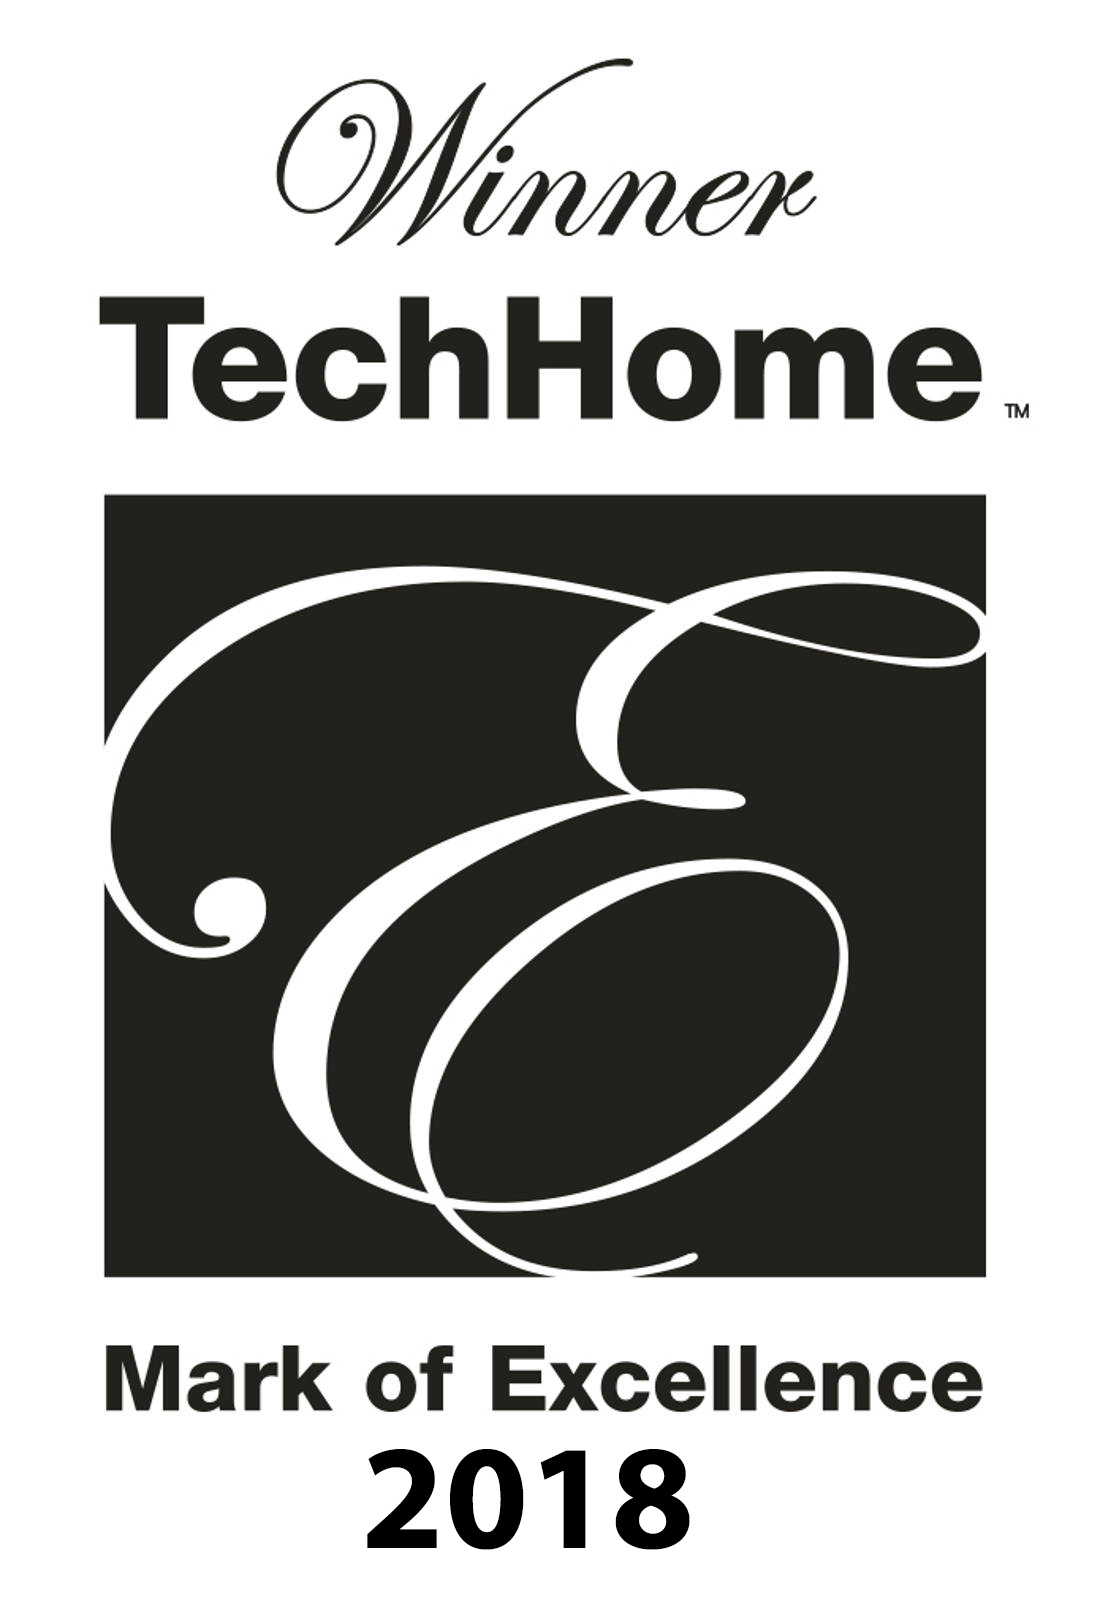 TechHome Mark of Excellence Award 2018